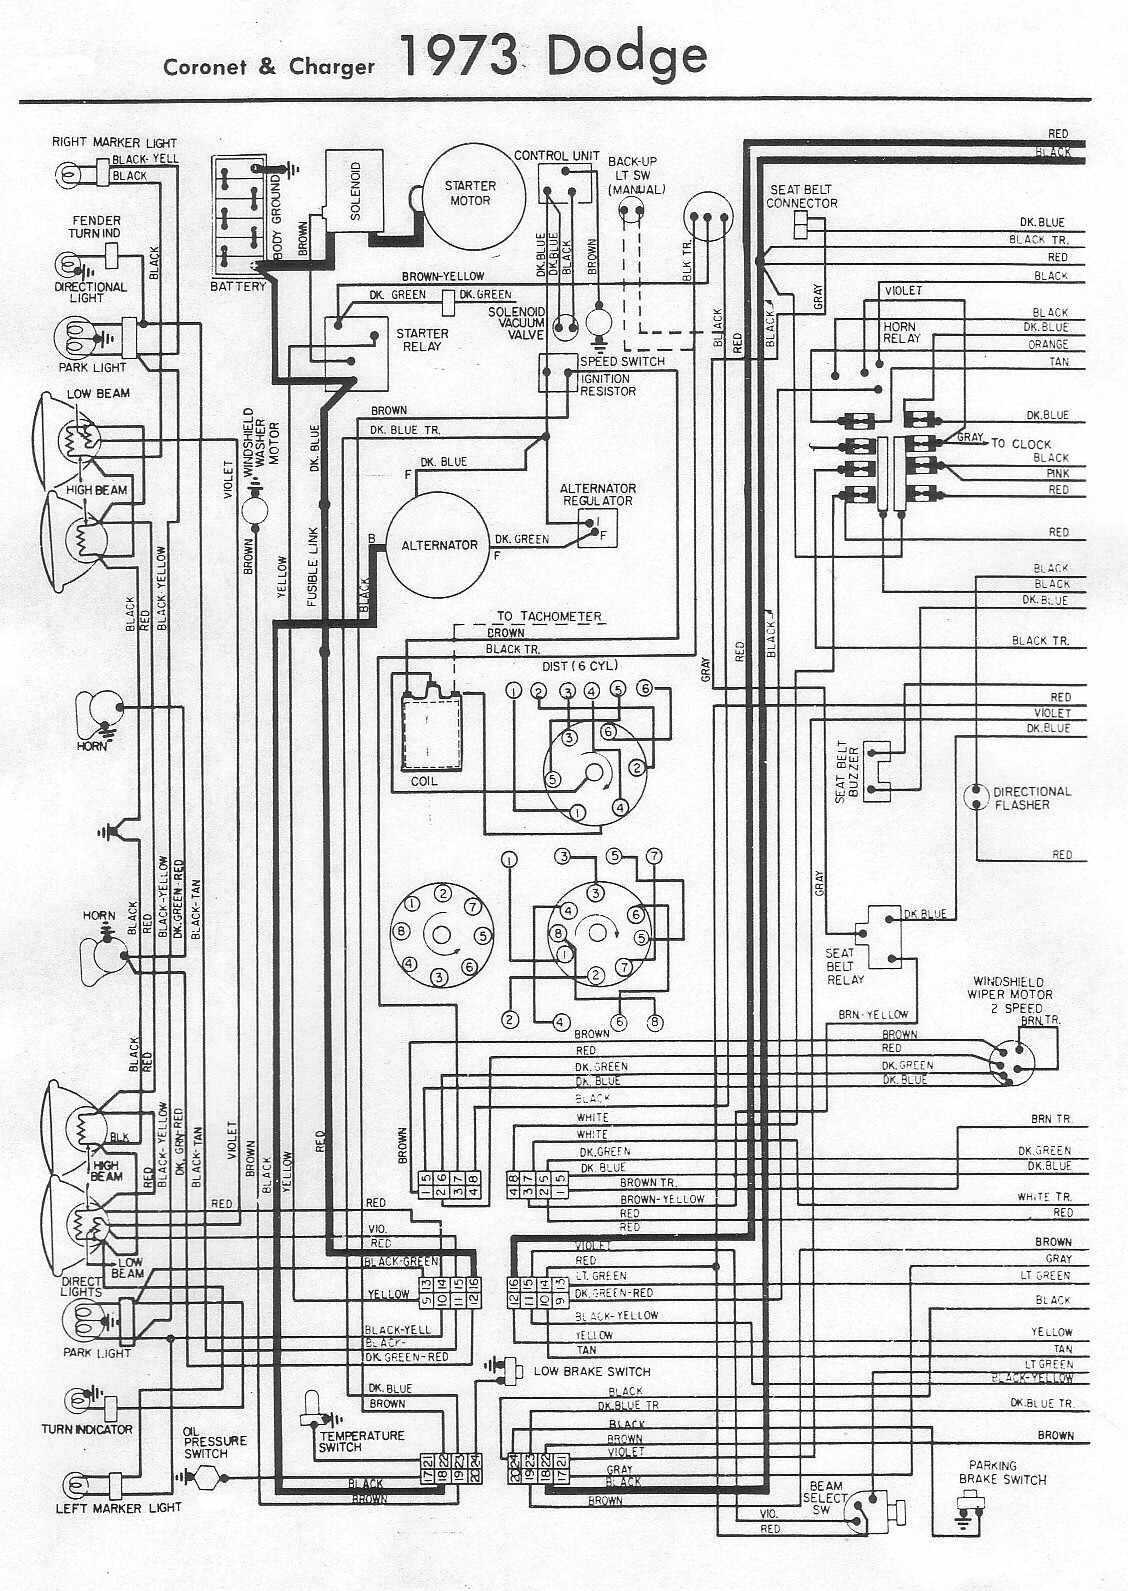 small resolution of 1973 challenger wiring diagram simple wiring diagram detailed 1956 dodge truck wiring diagram 1973 dodge truck